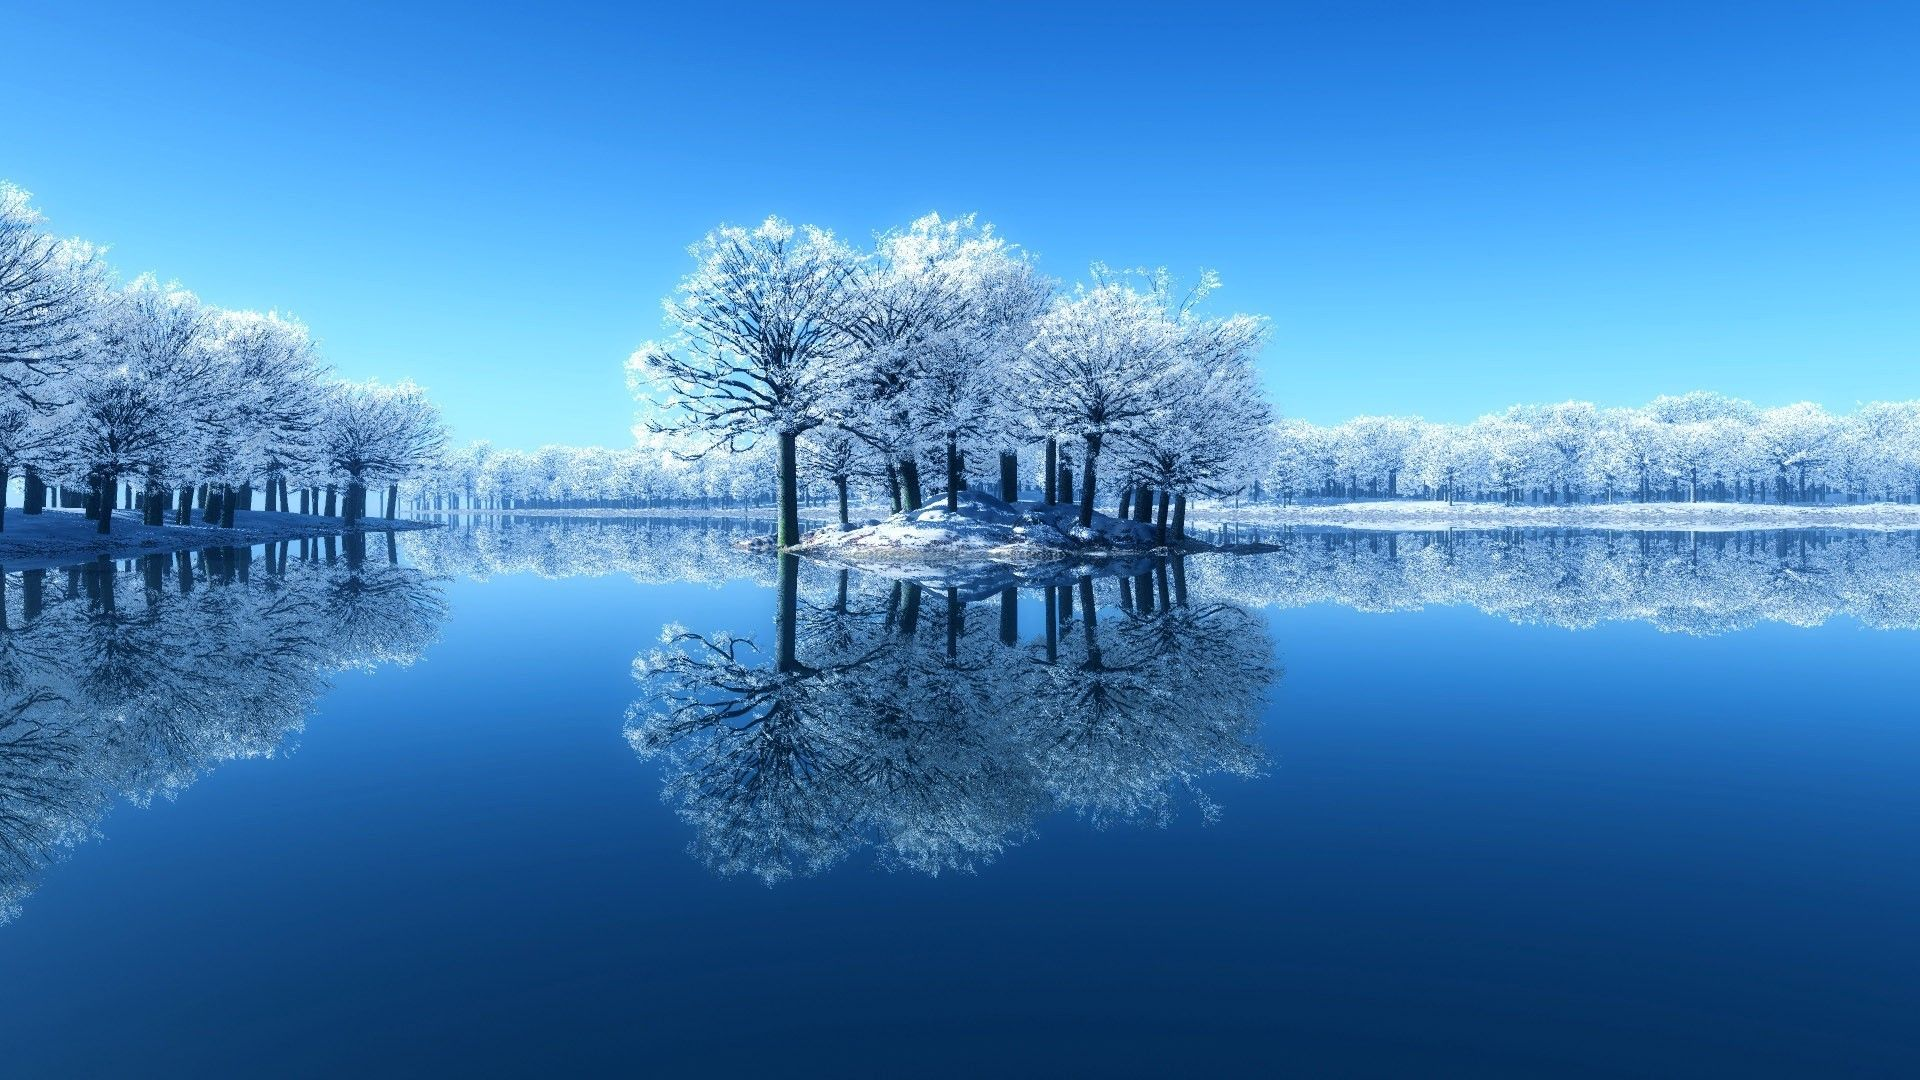 Winter Scene Free Wallpaper and Background